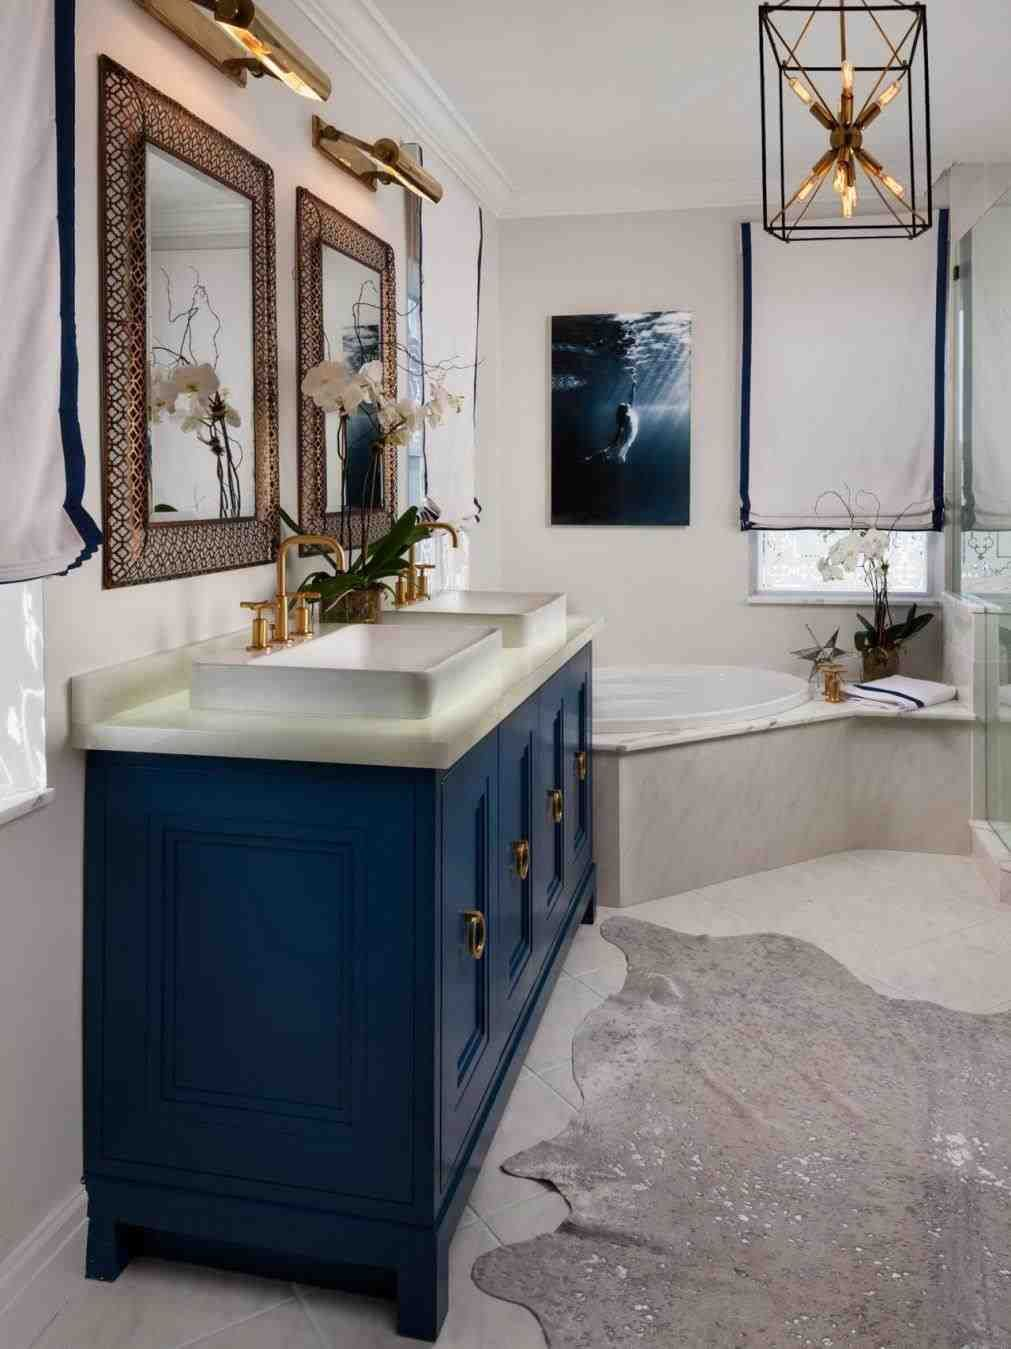 Navy Blue And Gold Bathroom Accessories Navy Bathroom Blue Bathroom Vanity Blue Bathroom Decor